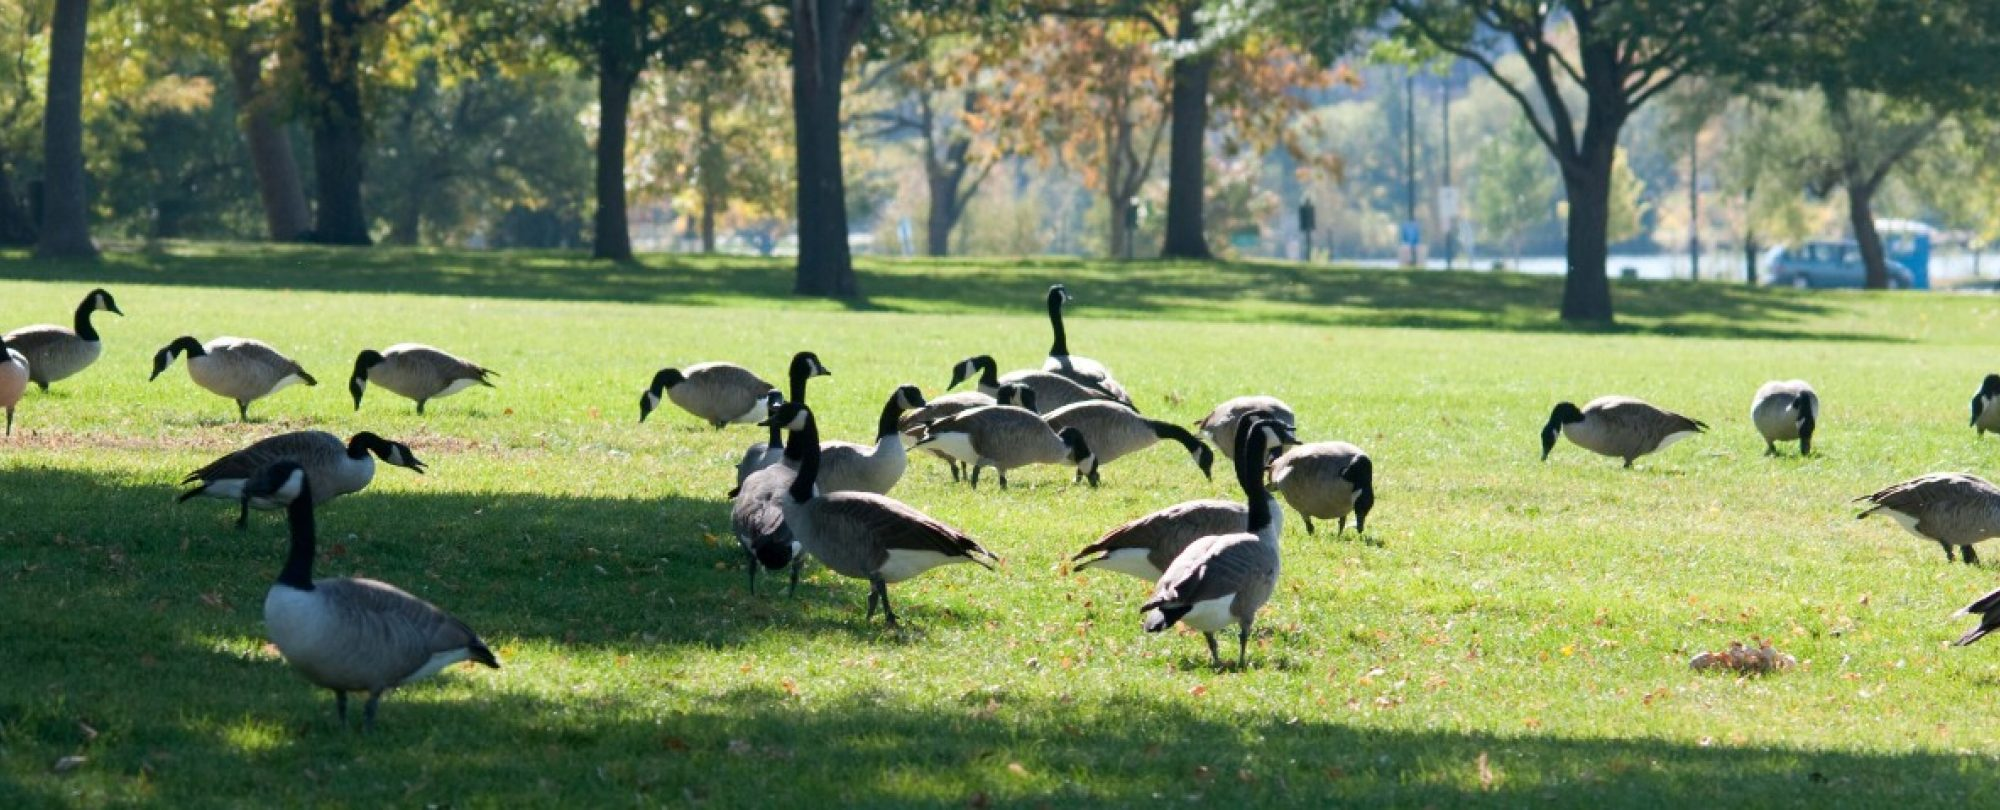 Geese in a park